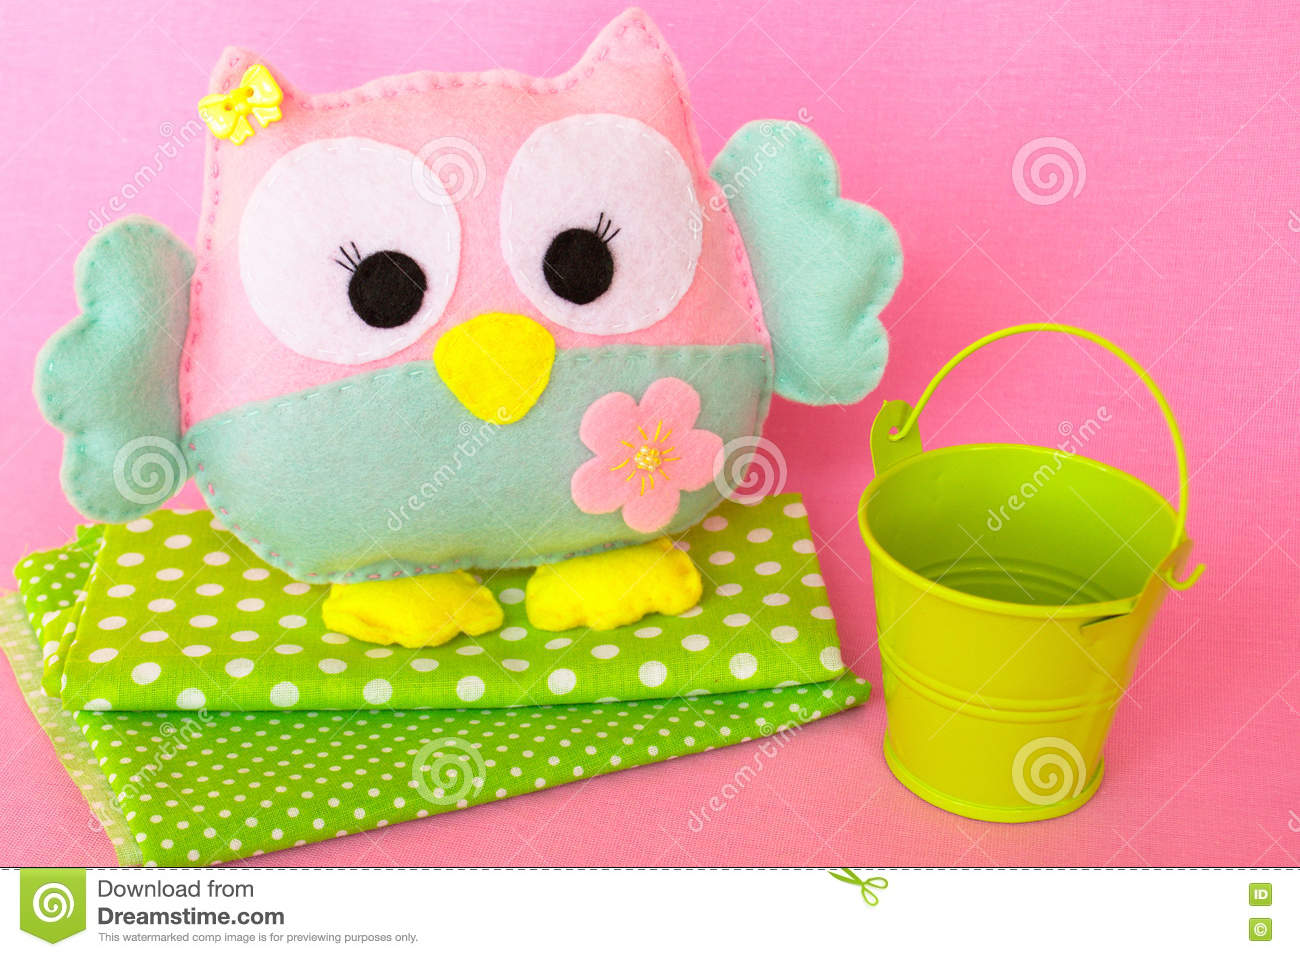 Sewing crafts for children - Simple Felt Sewing Crafts For Kids